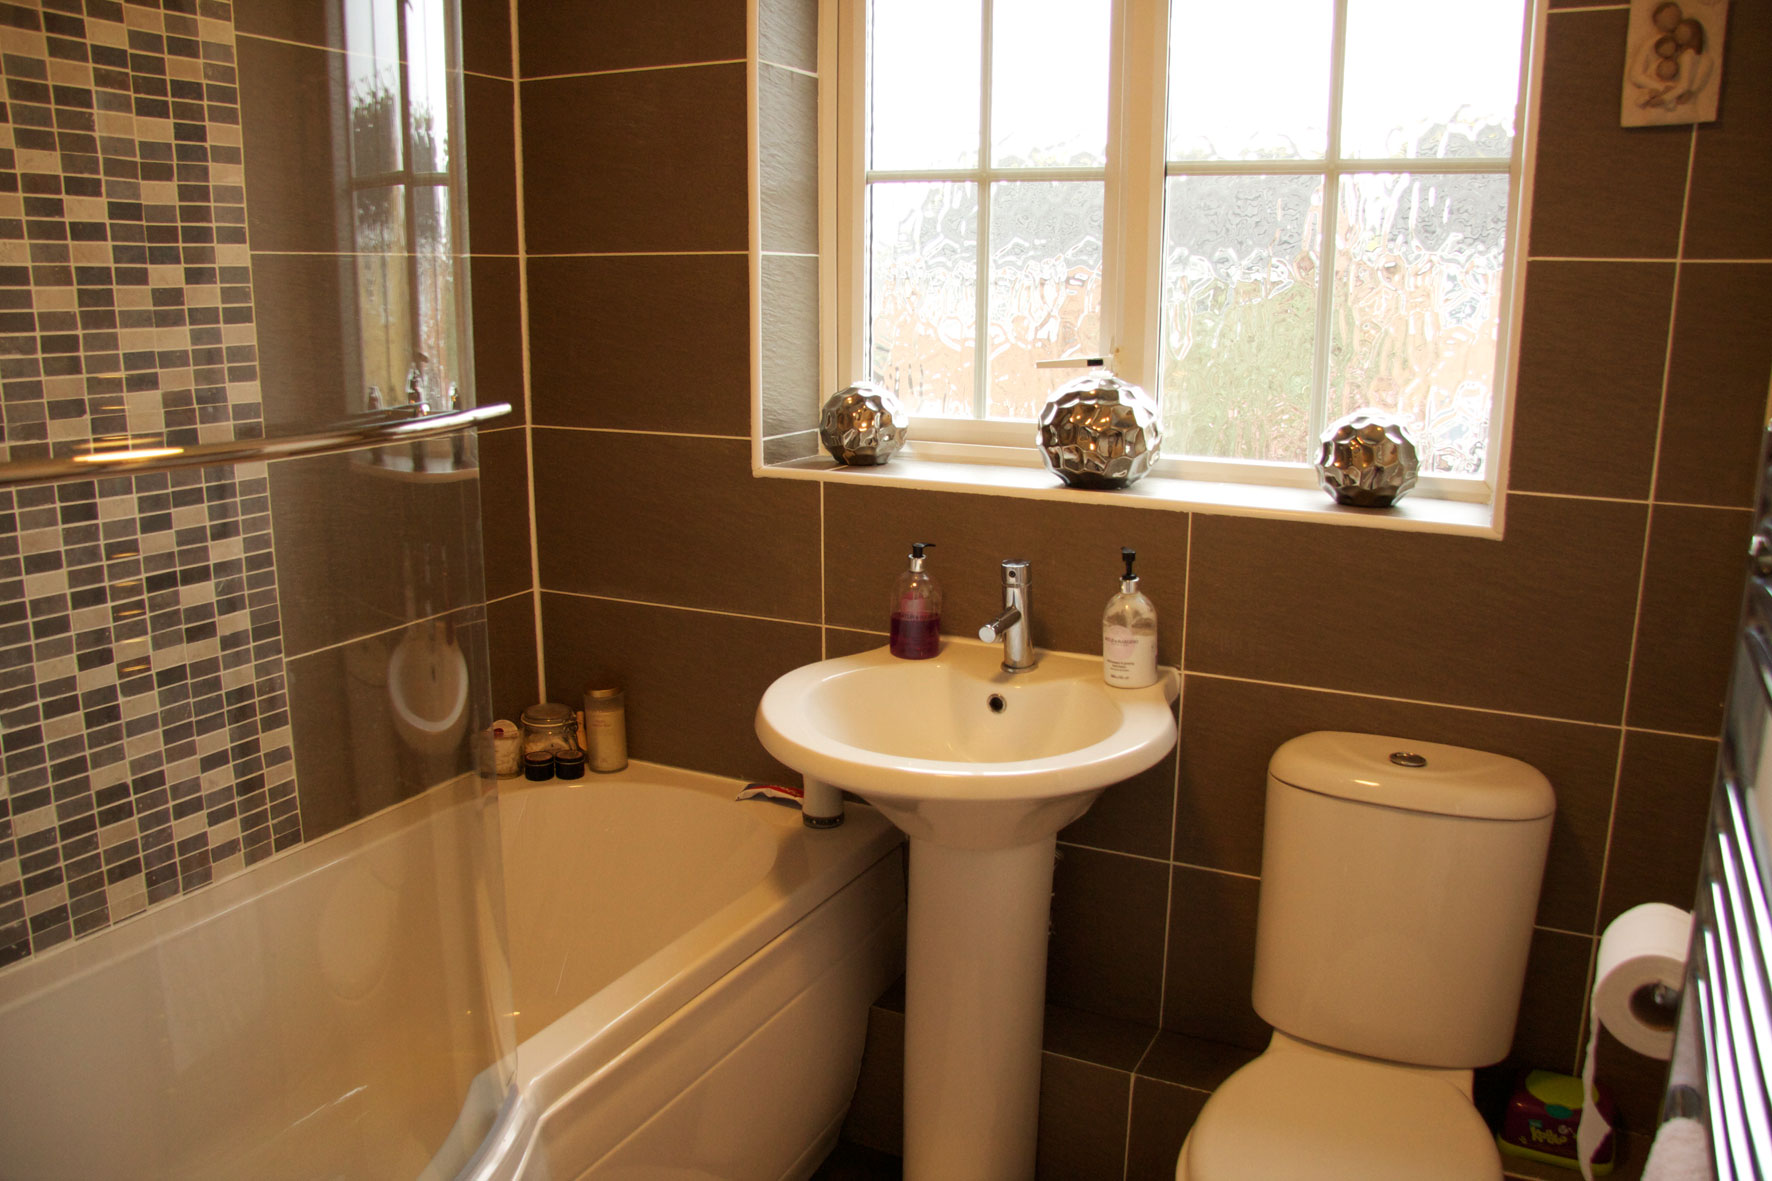 Work ac homeworks northampton based home improvements for New bathroom ideas photos